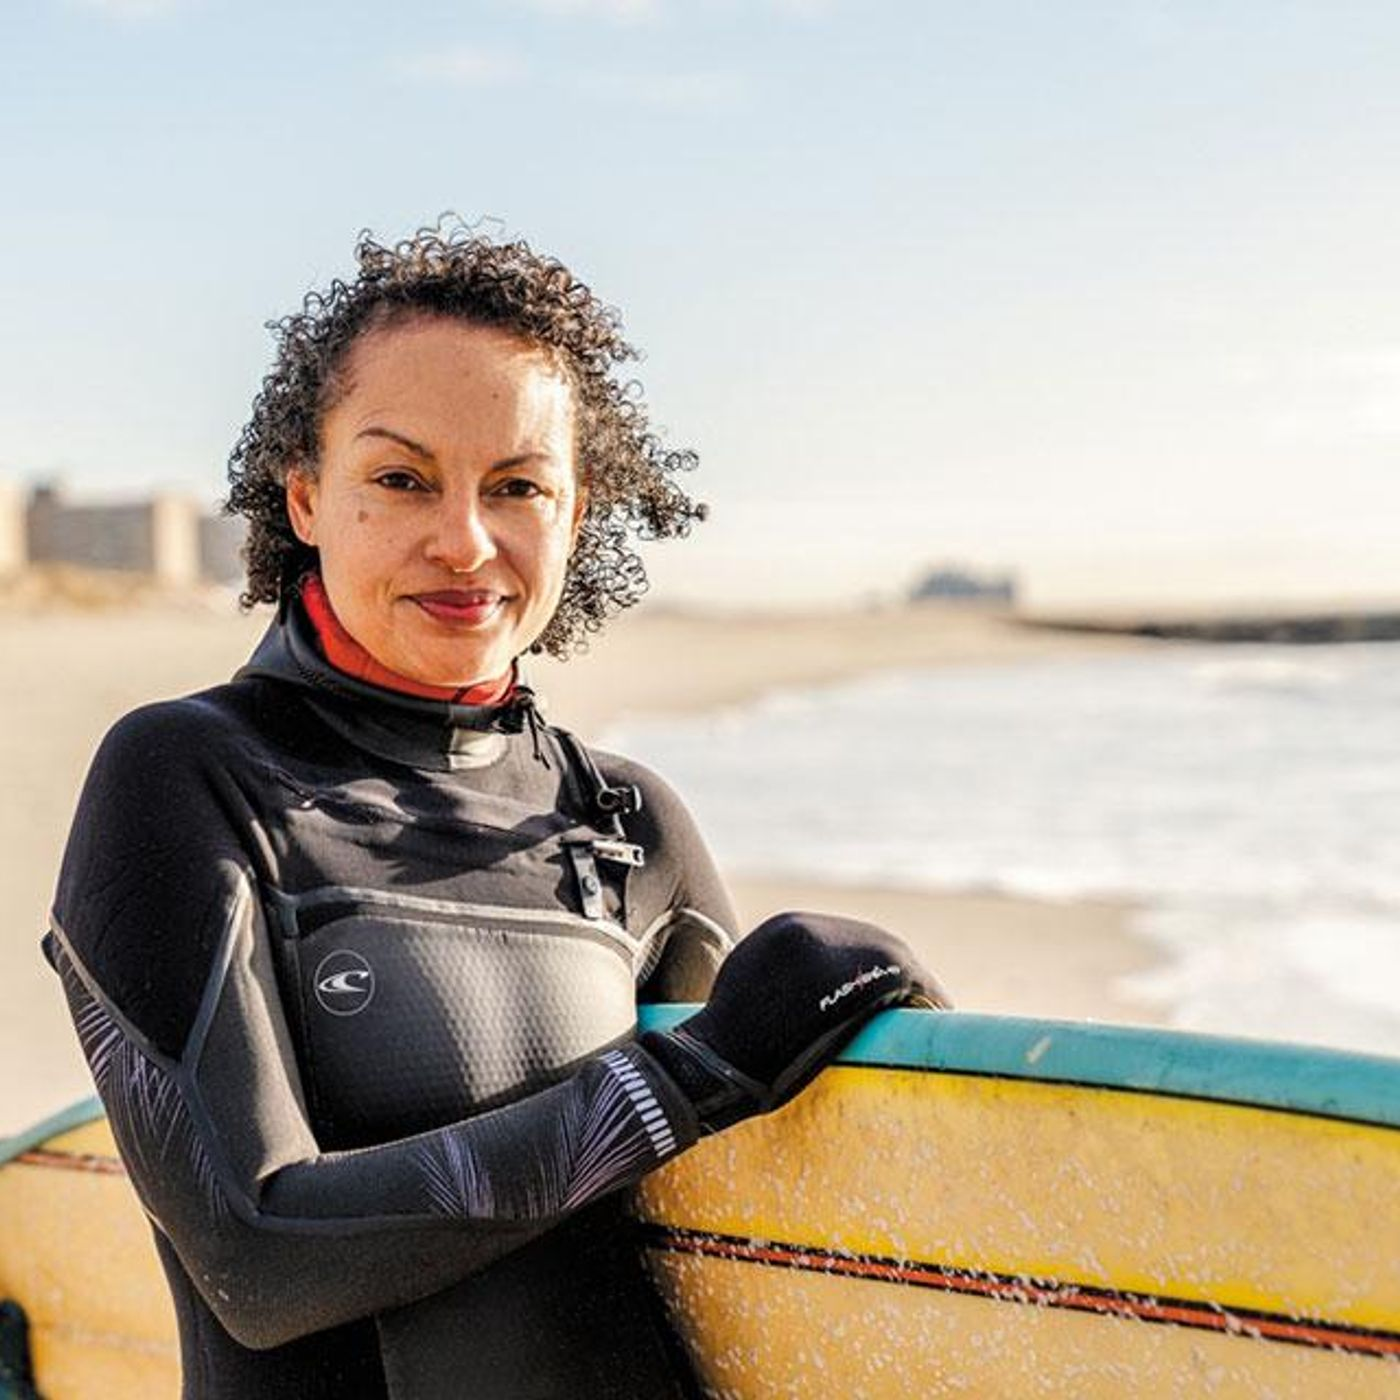 Rockaway: Surfing Headlong Into a New Life by Diane Cardwell